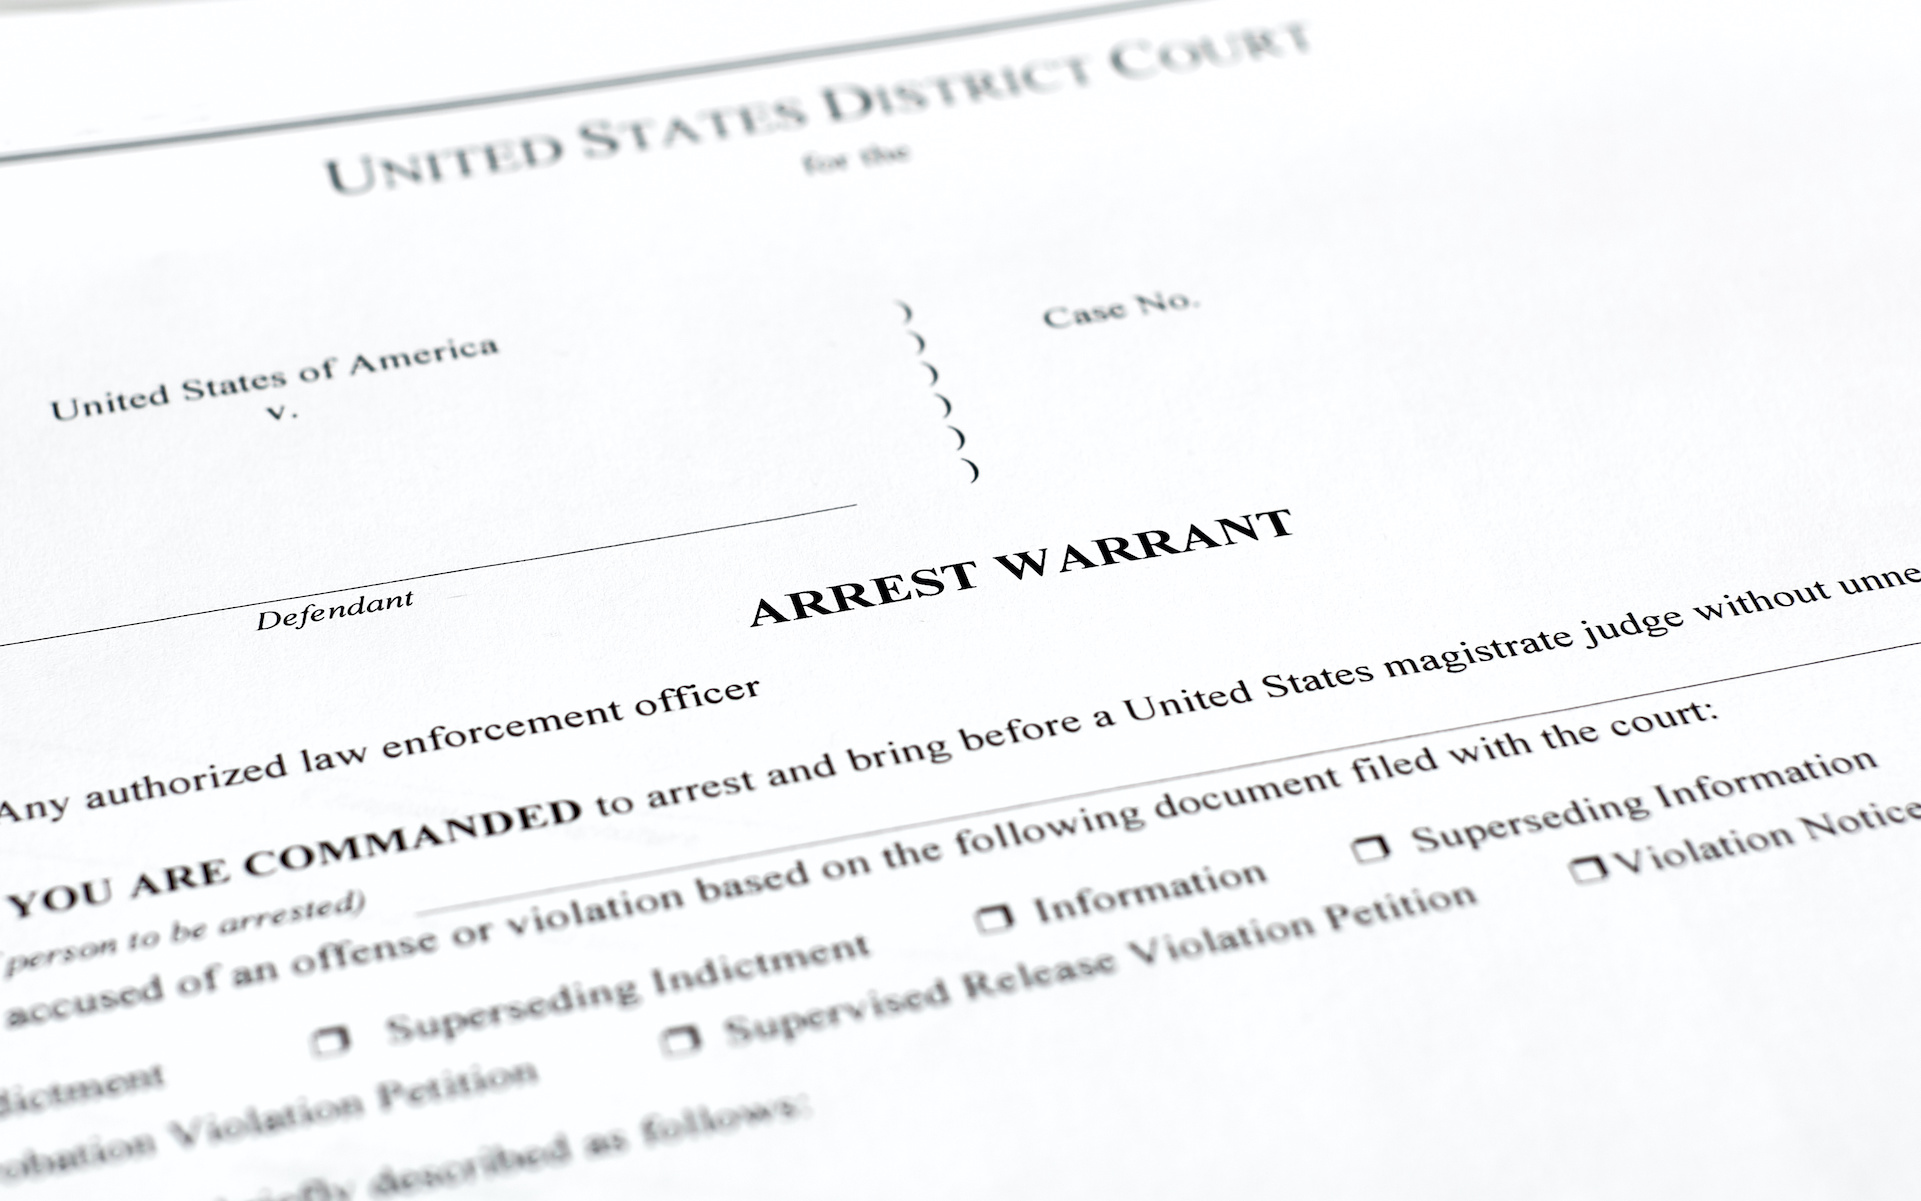 photo of an arrest warrant